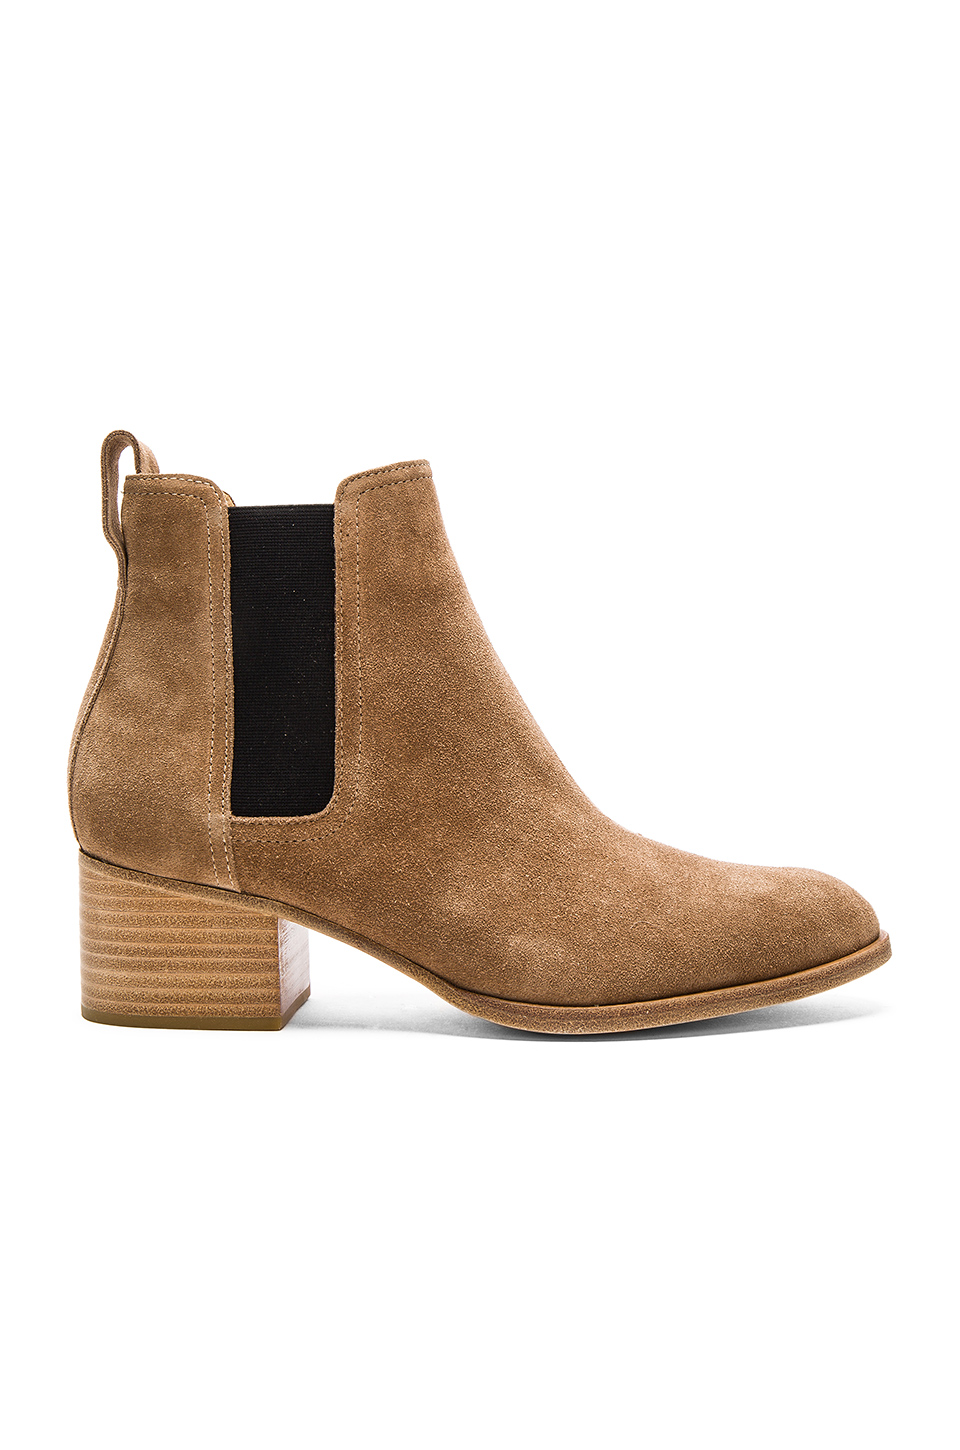 RAG & BONE 'WALKER' BOOT